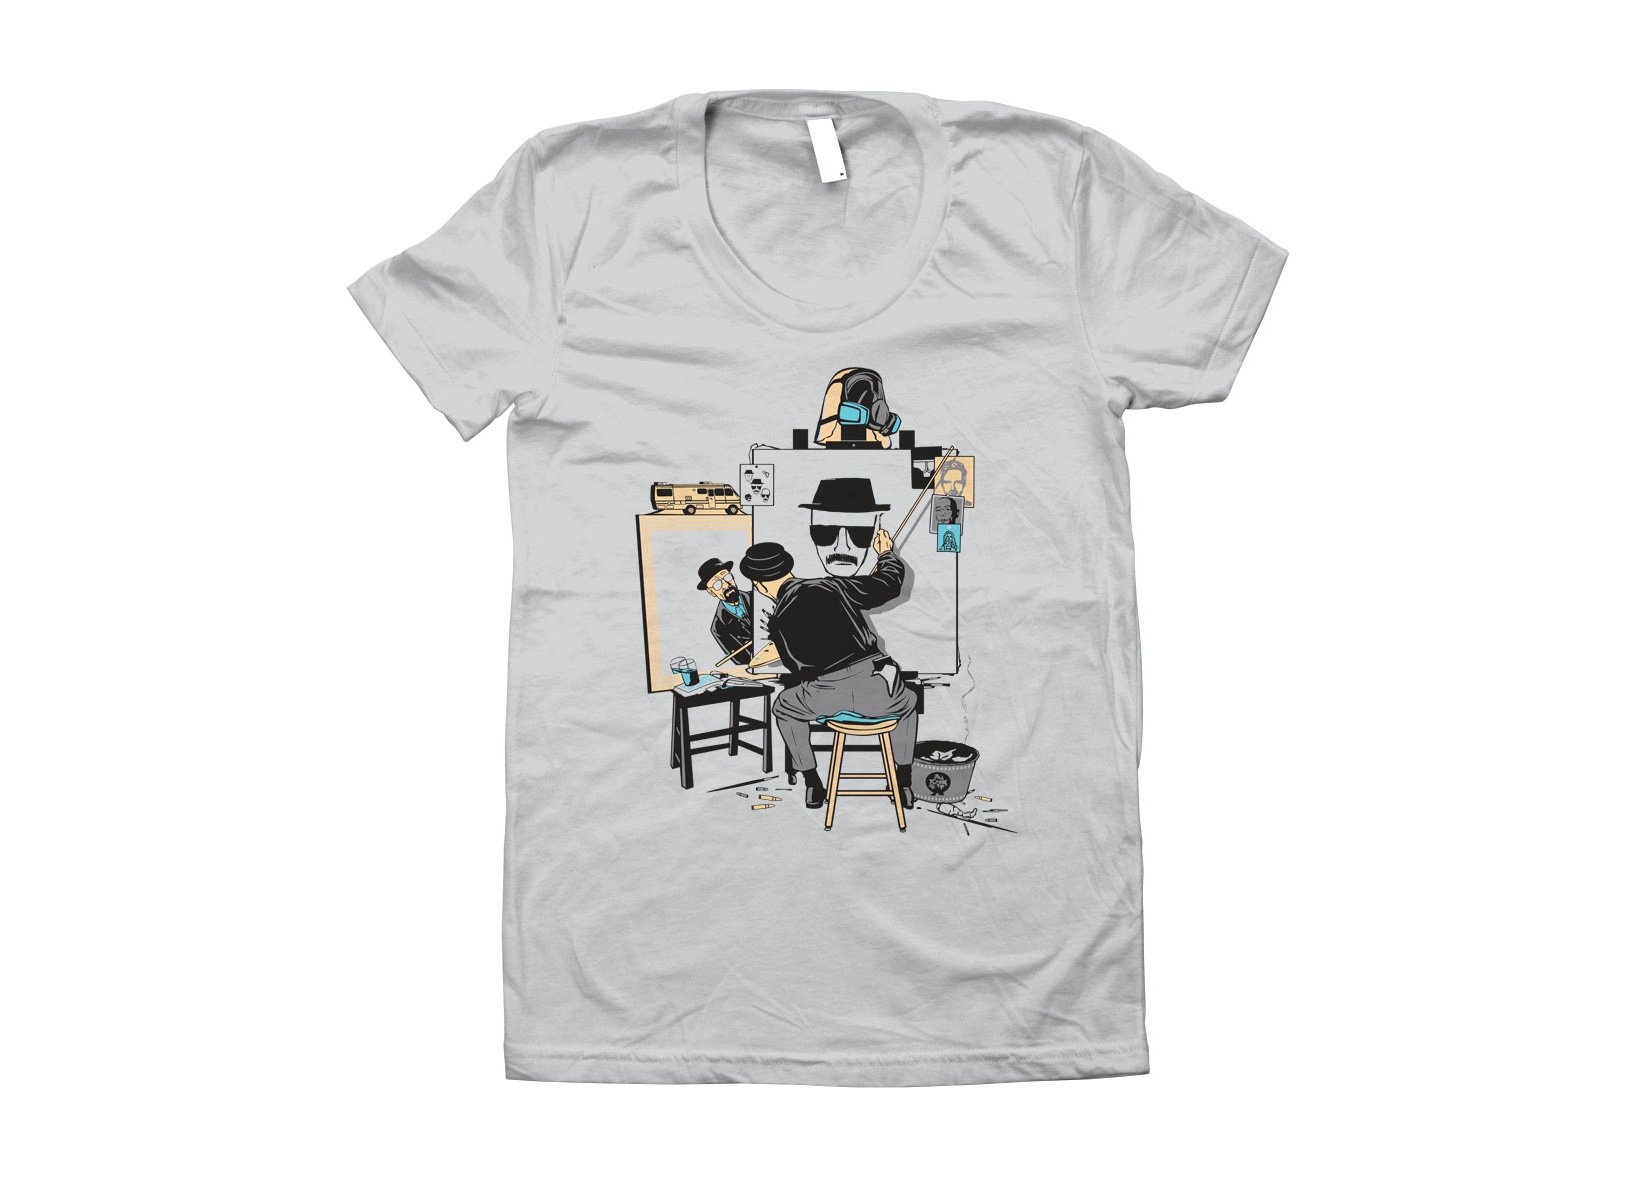 Heisenberg Self Portrait on Juniors T-Shirt